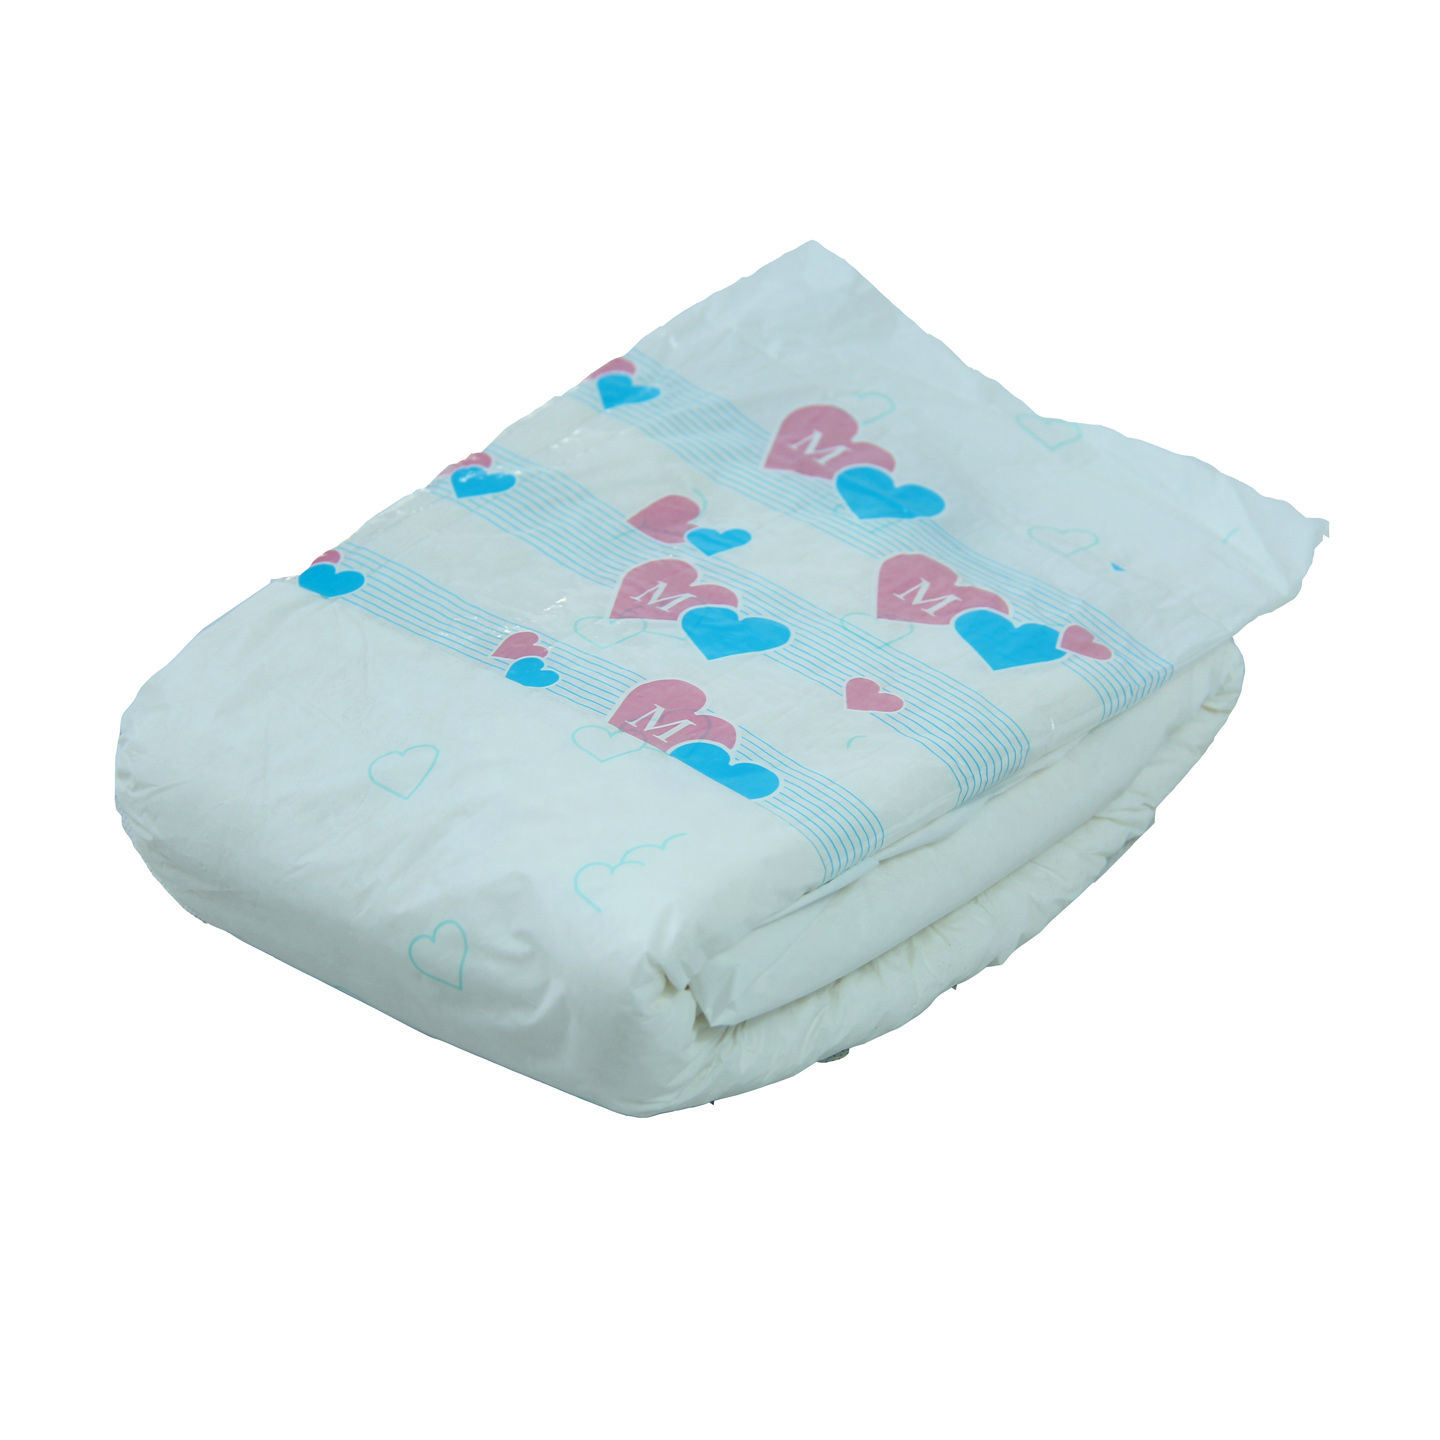 Disposable Overnight Absorbency Adult Diaper with Baby Printing